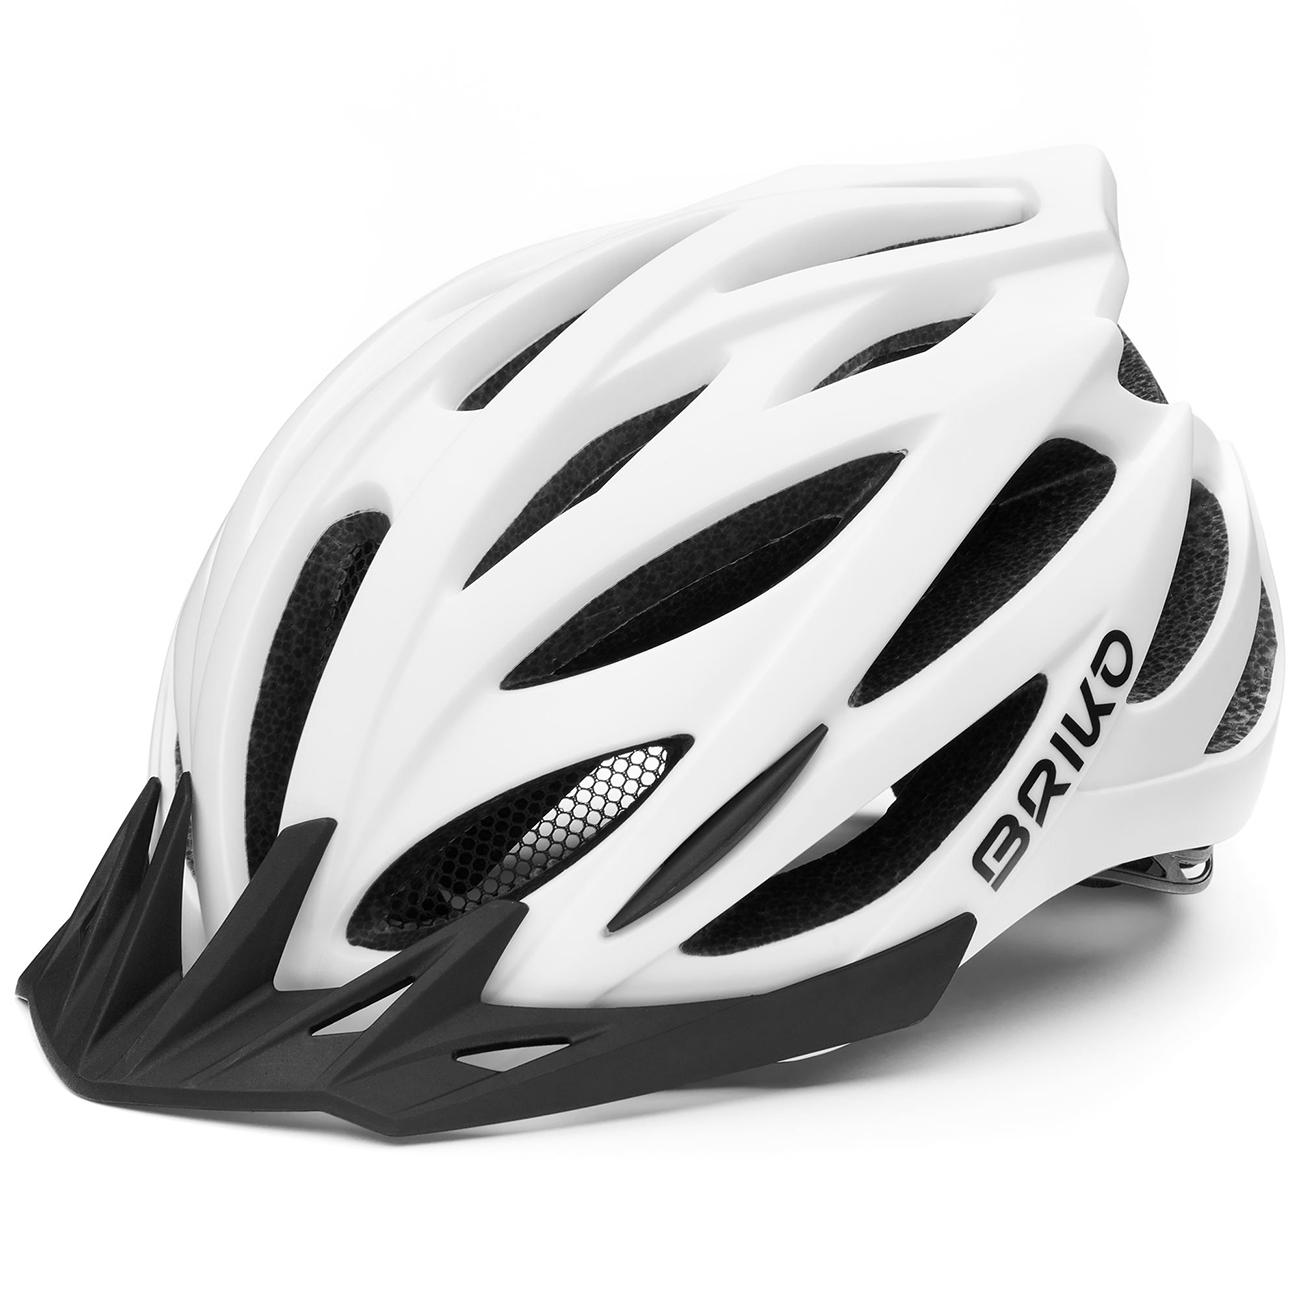 Briko Fietshelm MTB unisex Wit - Morgan Bike Helmet Matt White